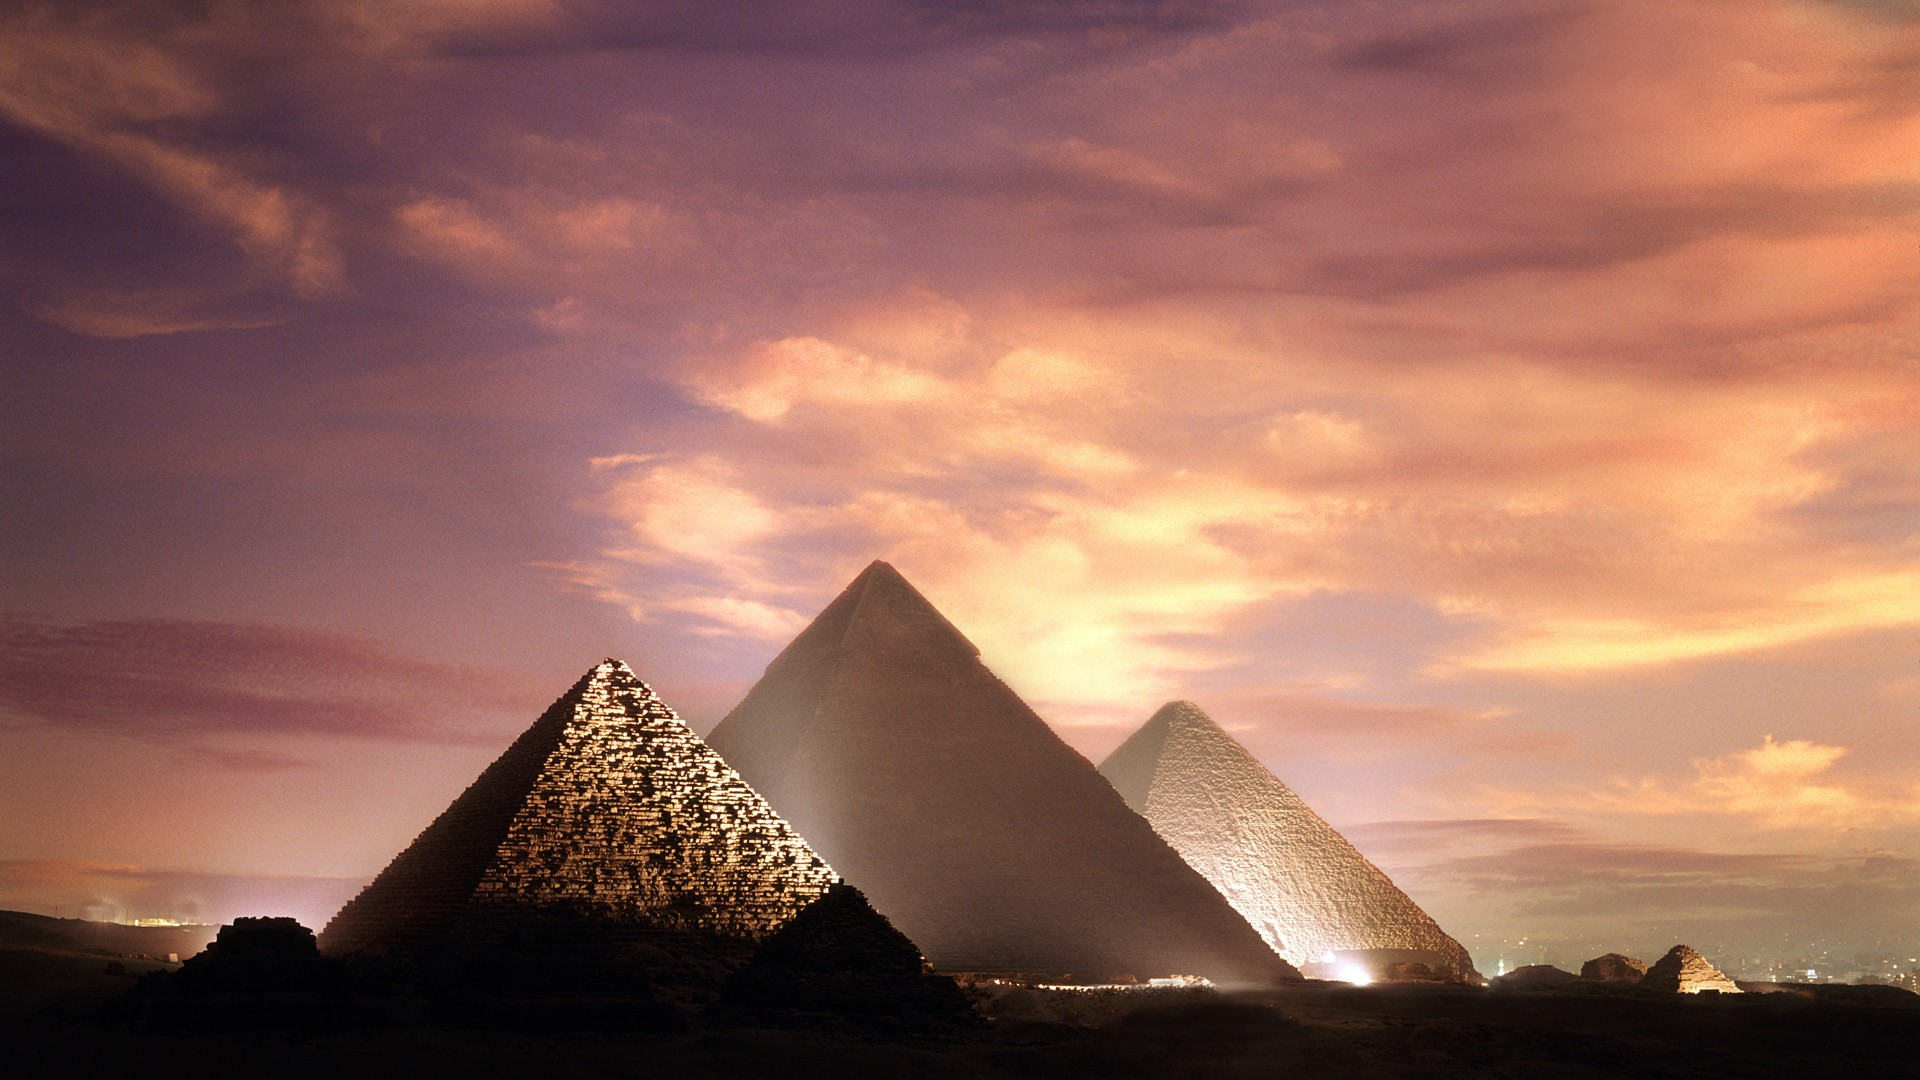 Pyramids.of.Giza.original.1743 - To no Cosmos